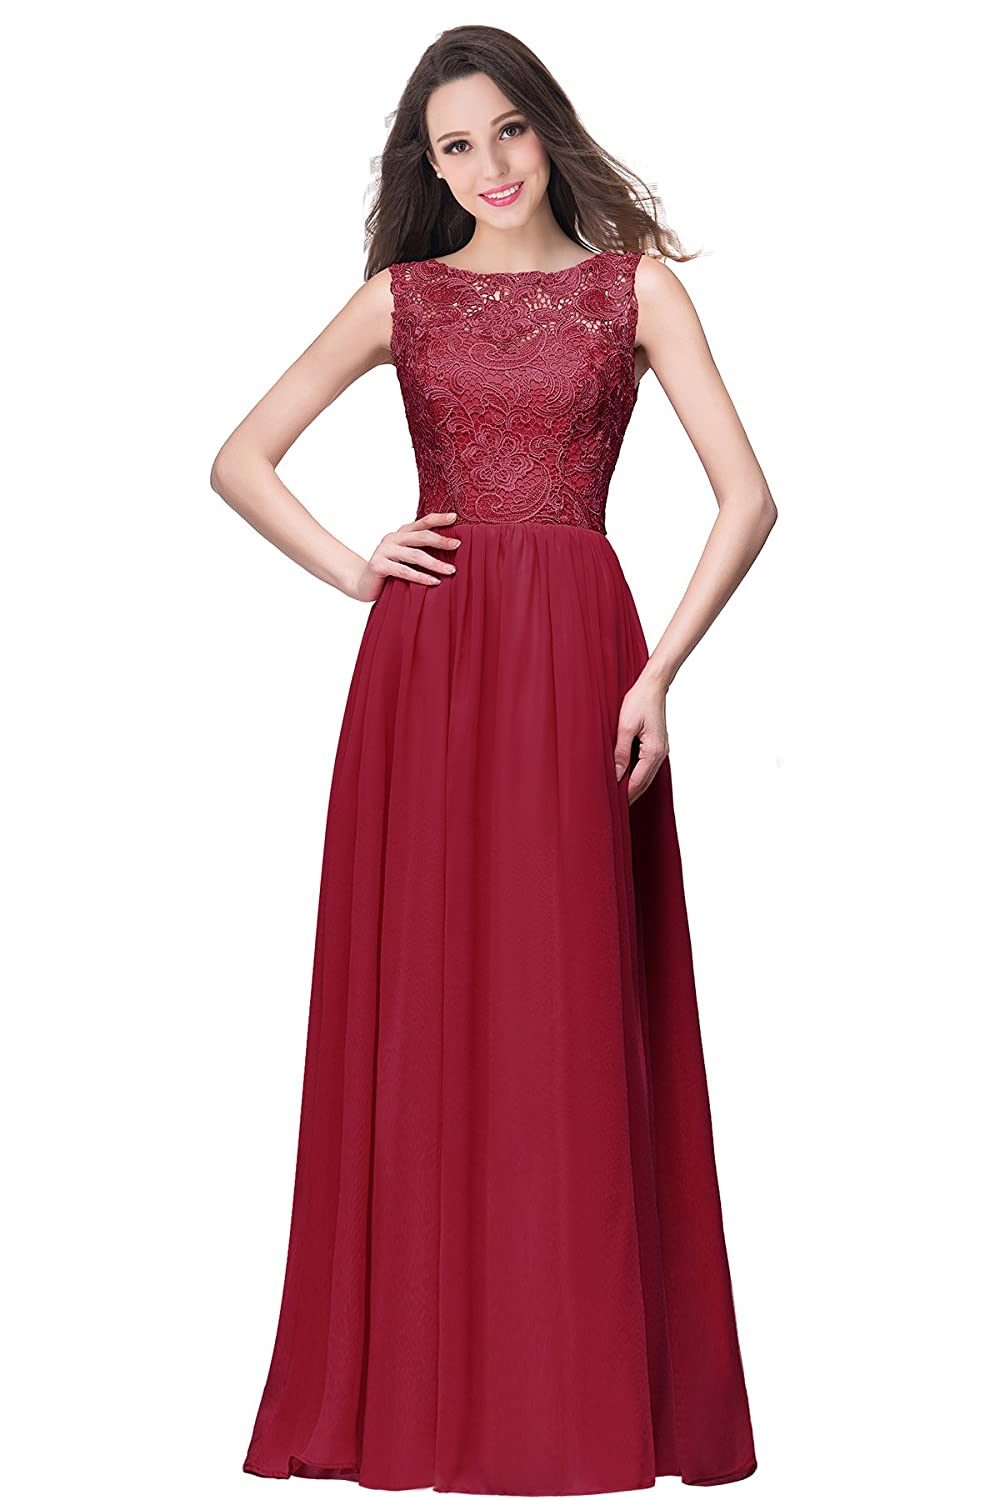 a0bfc1fb17485 Long Bridesmaid Dress Chiffon Prom Dress Occasion:formal evening party,prom,wedding,other  special occasions.